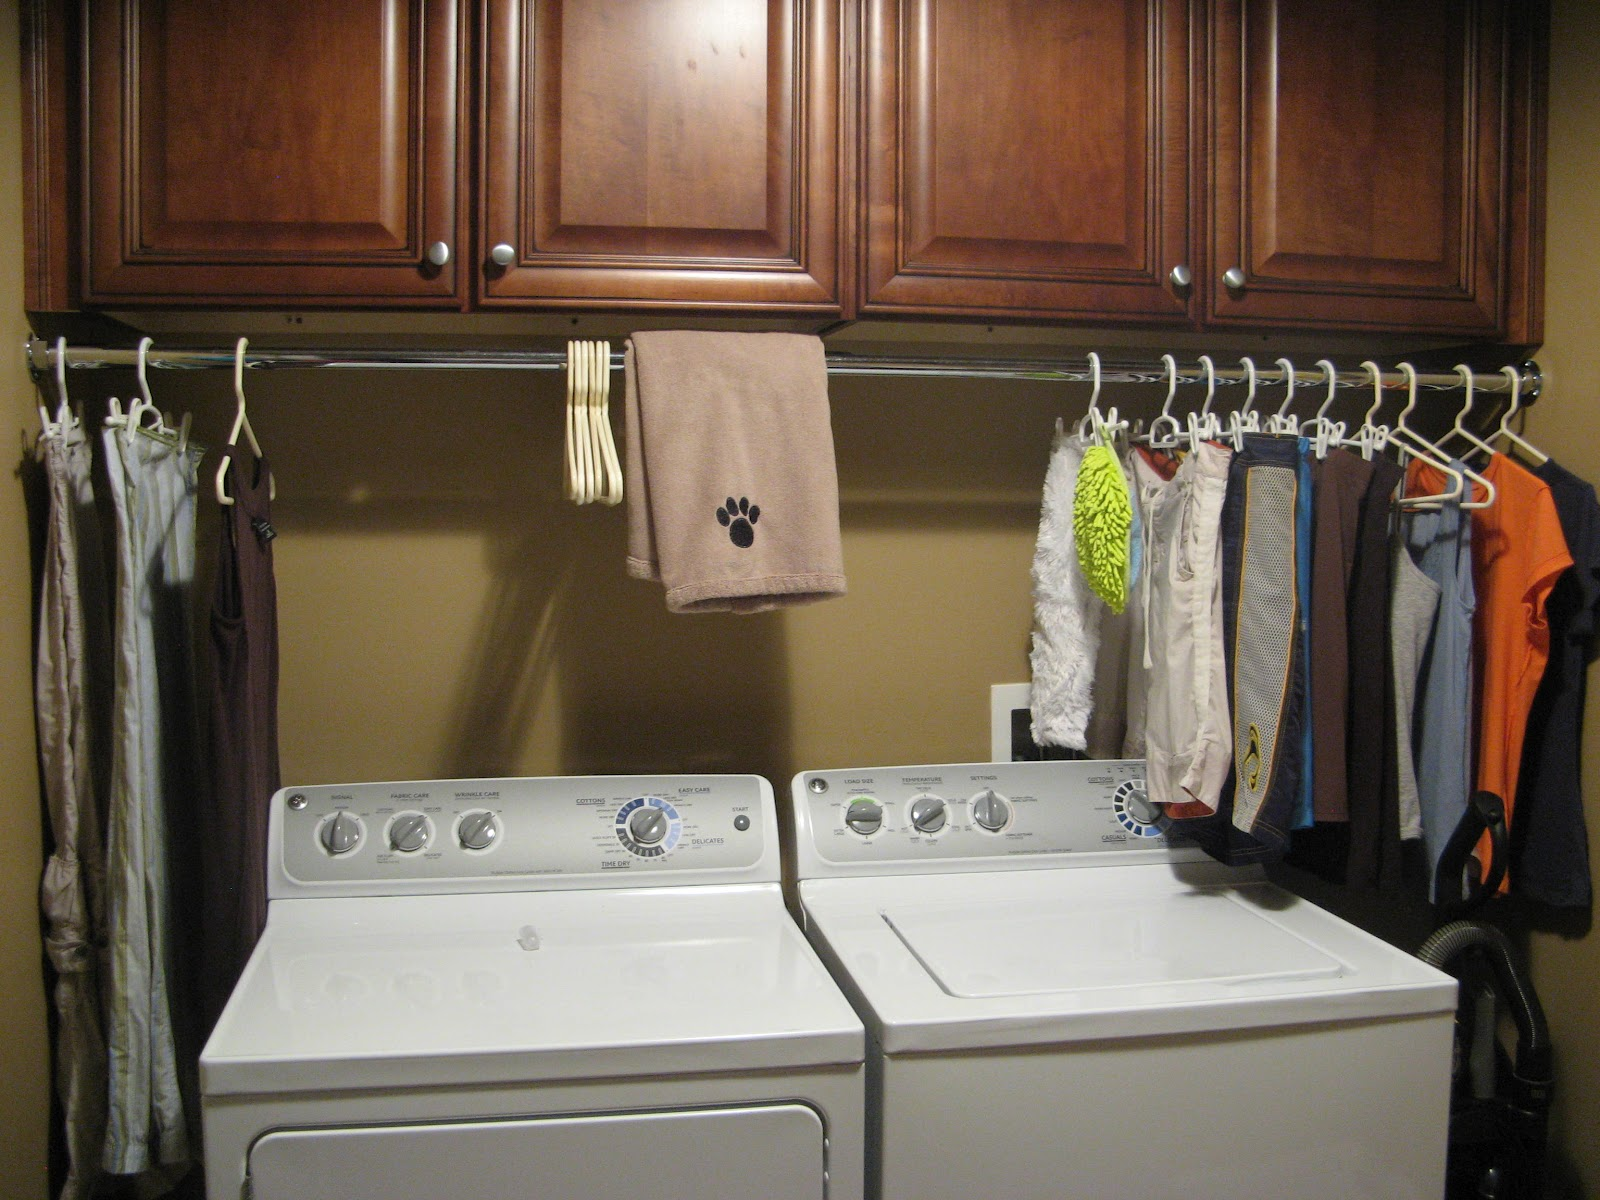 Susan Snyder: 3 LAUNDRY ROOM TIPS